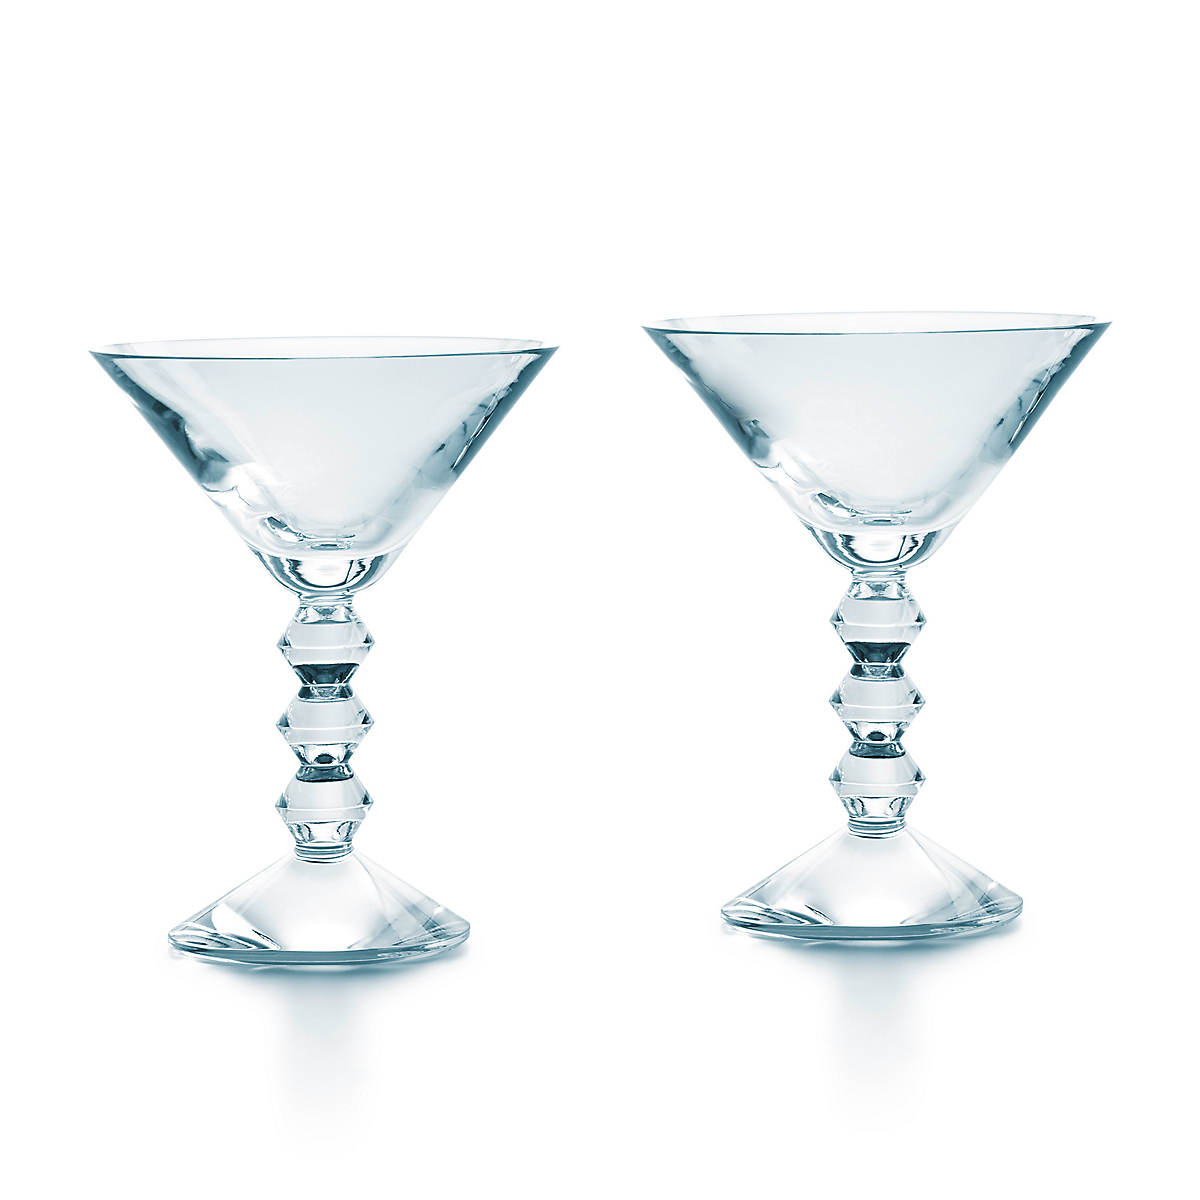 Baccarat Vega Martini Glasses, Set of 2 Clear